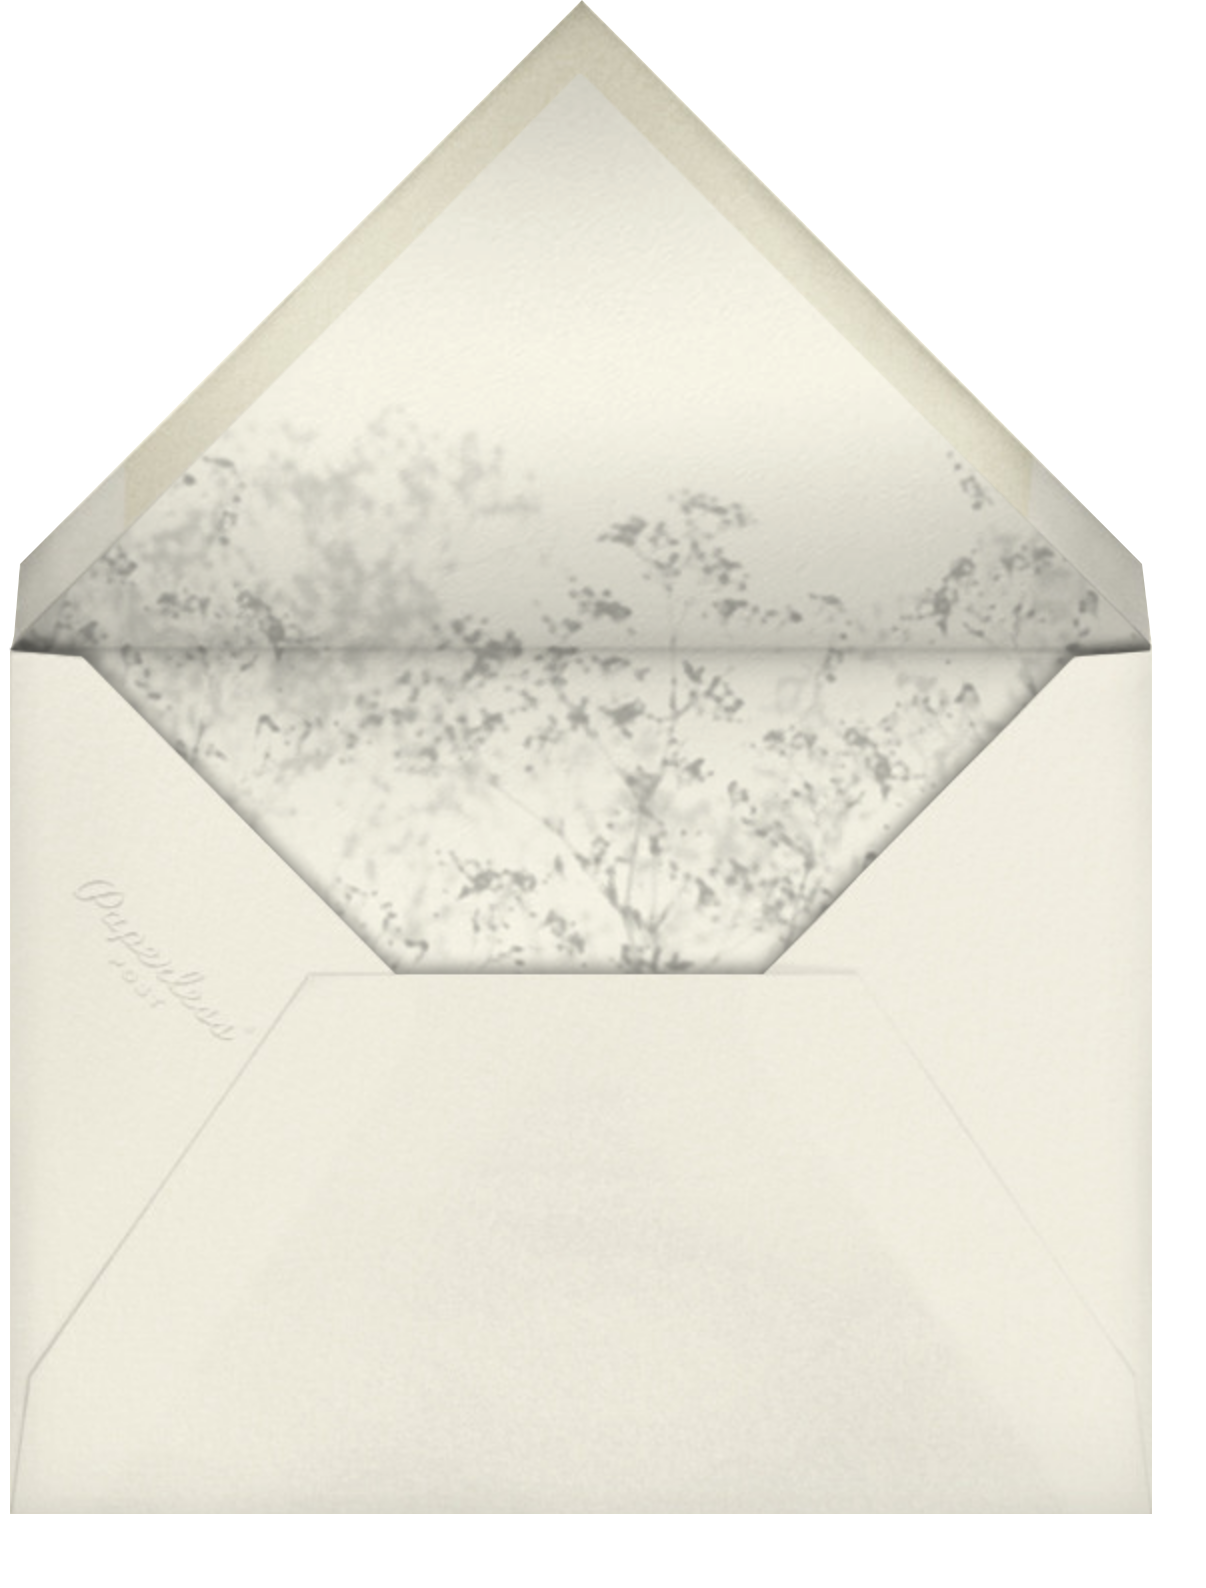 Gentle Shadow (Invitation) - Paperless Post - All - envelope back